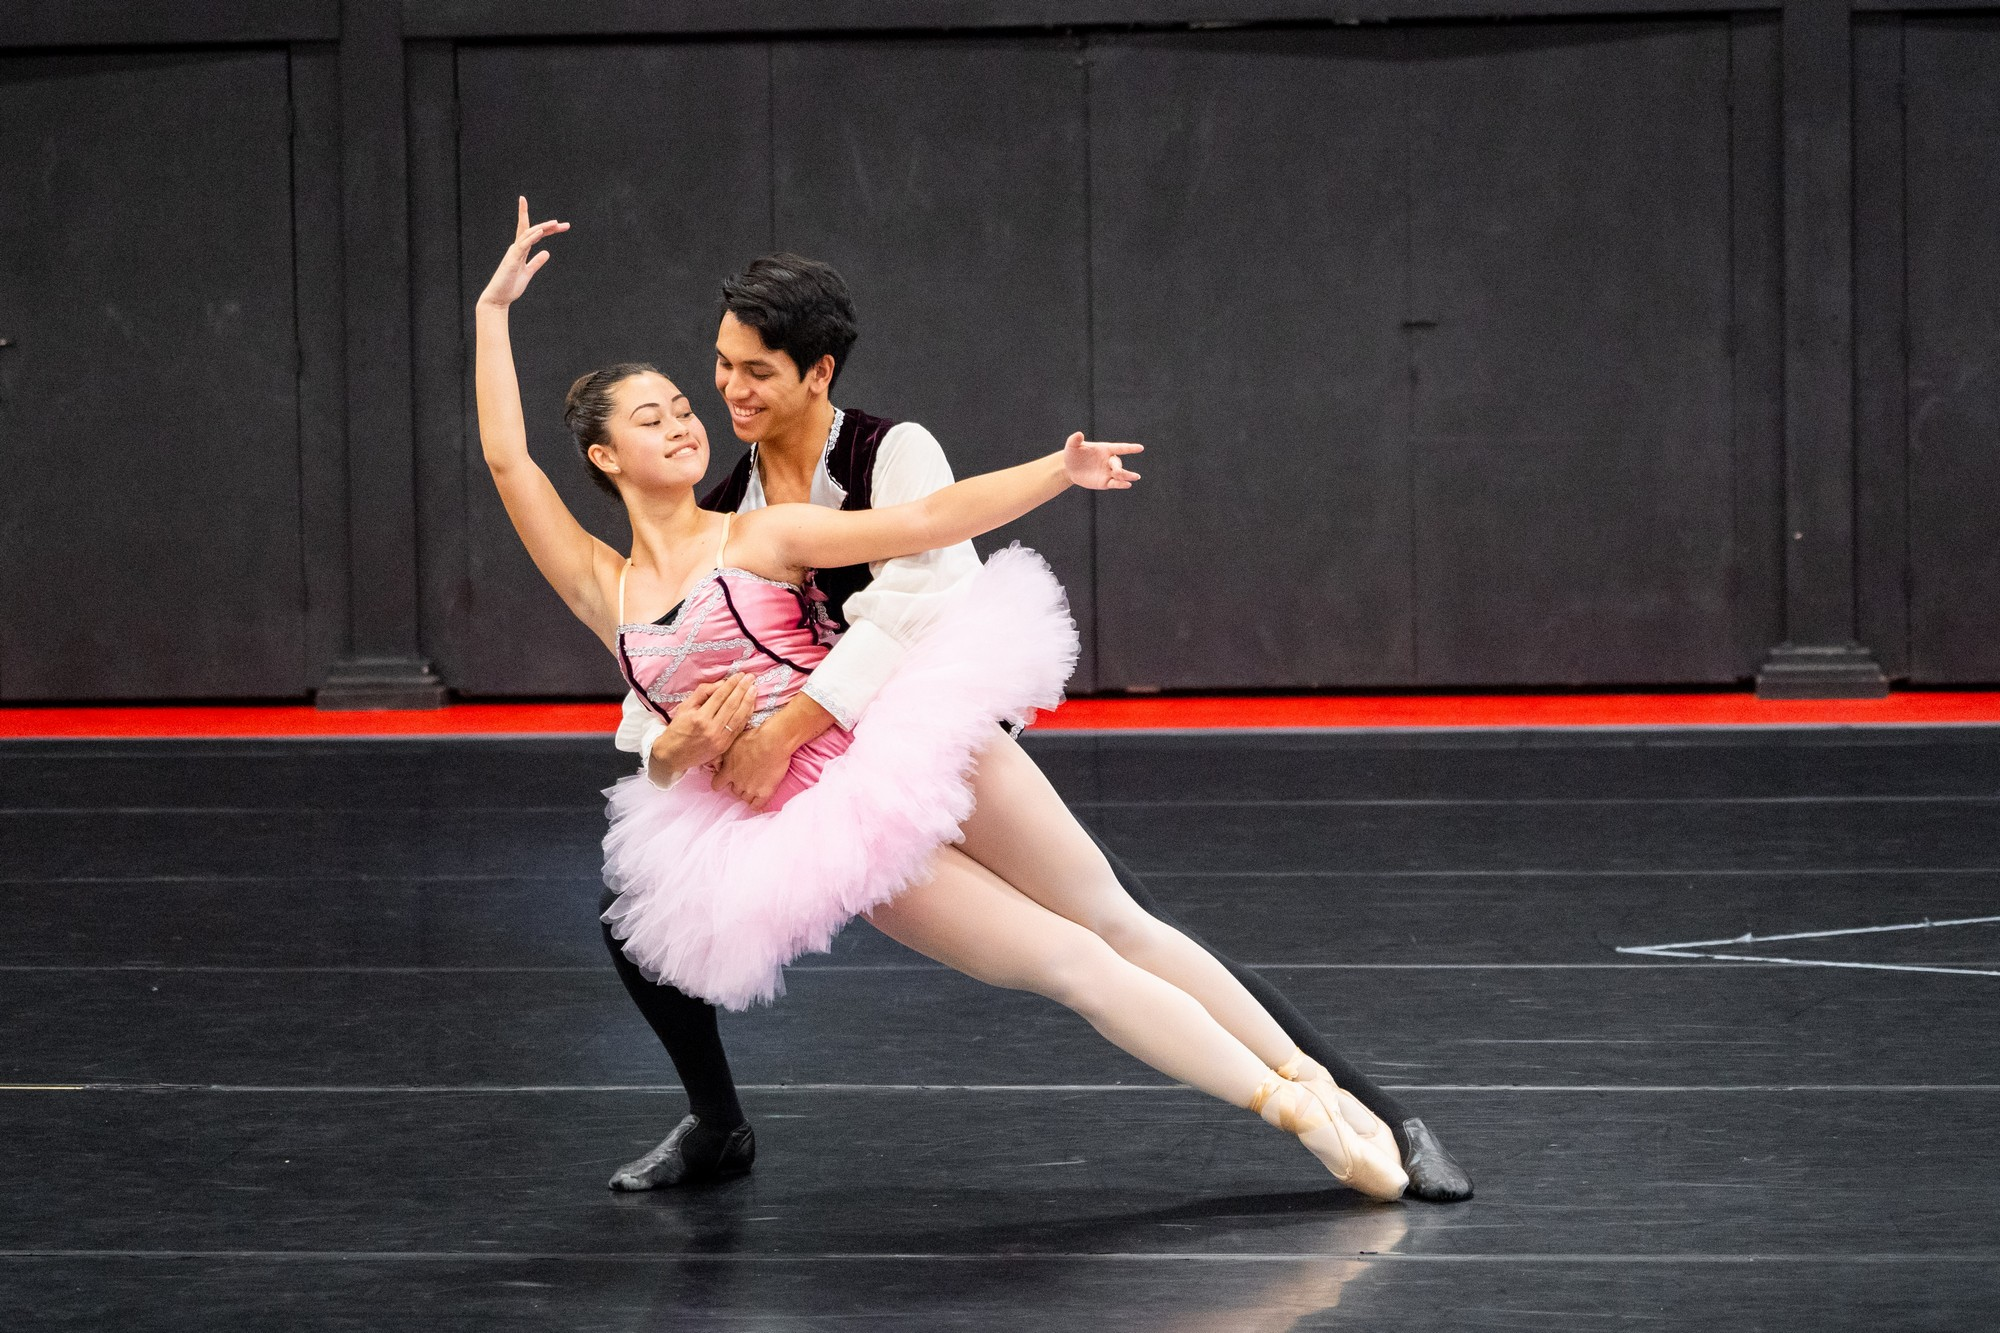 Couple in ballet pose, she in pink tutu, he in royal costume.